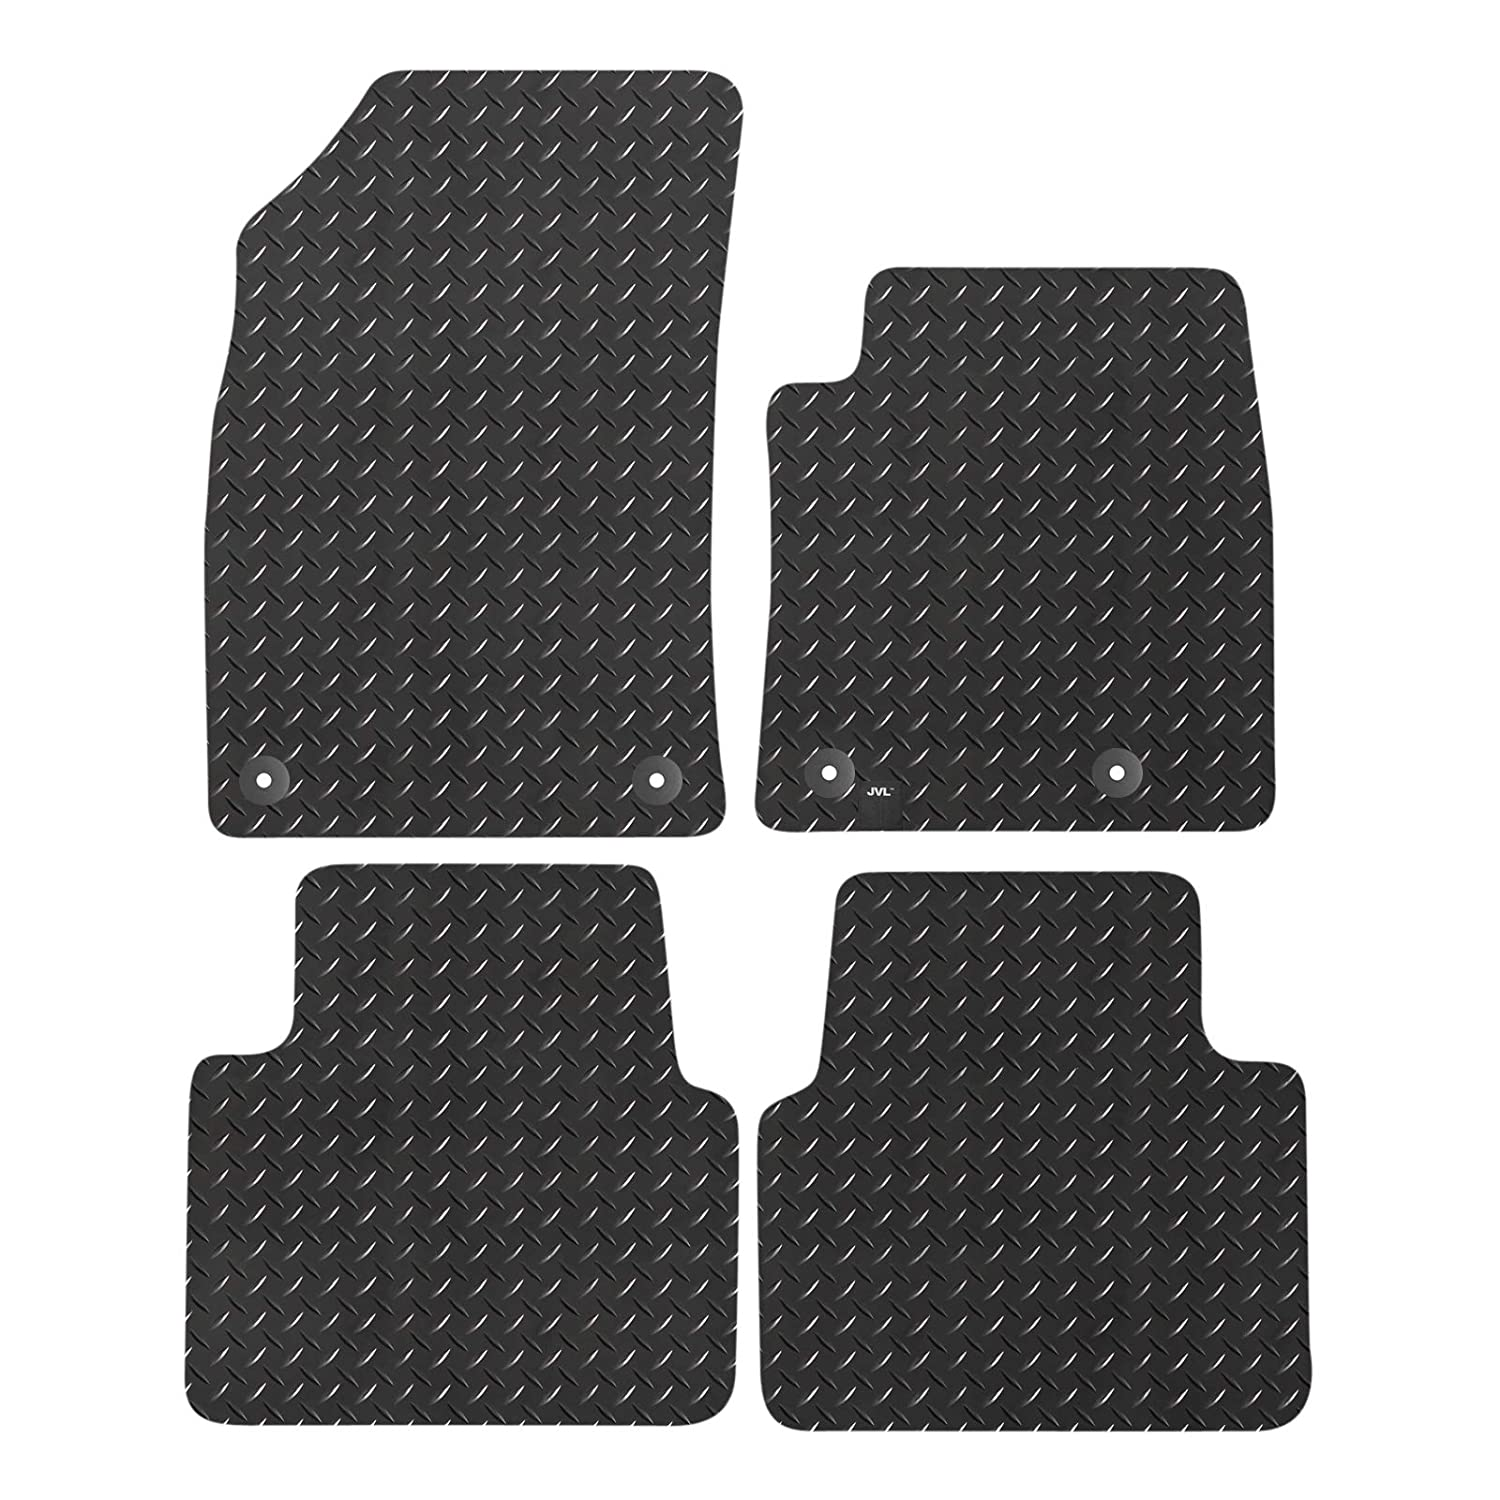 JVL Fully Tailored Rubber Car Mat Set for Crossland 2017-On Black